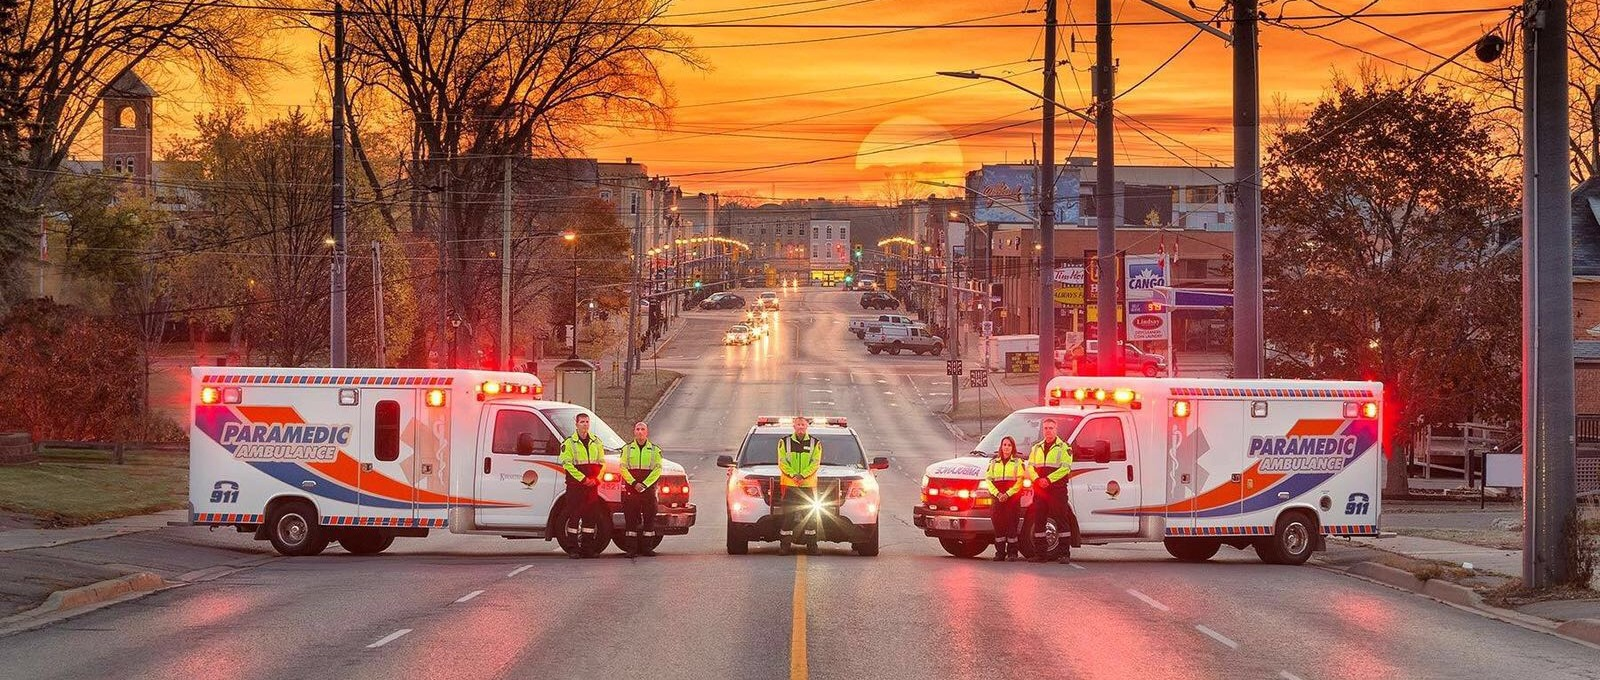 Kawartha Lakes Paramedics in front of sunset